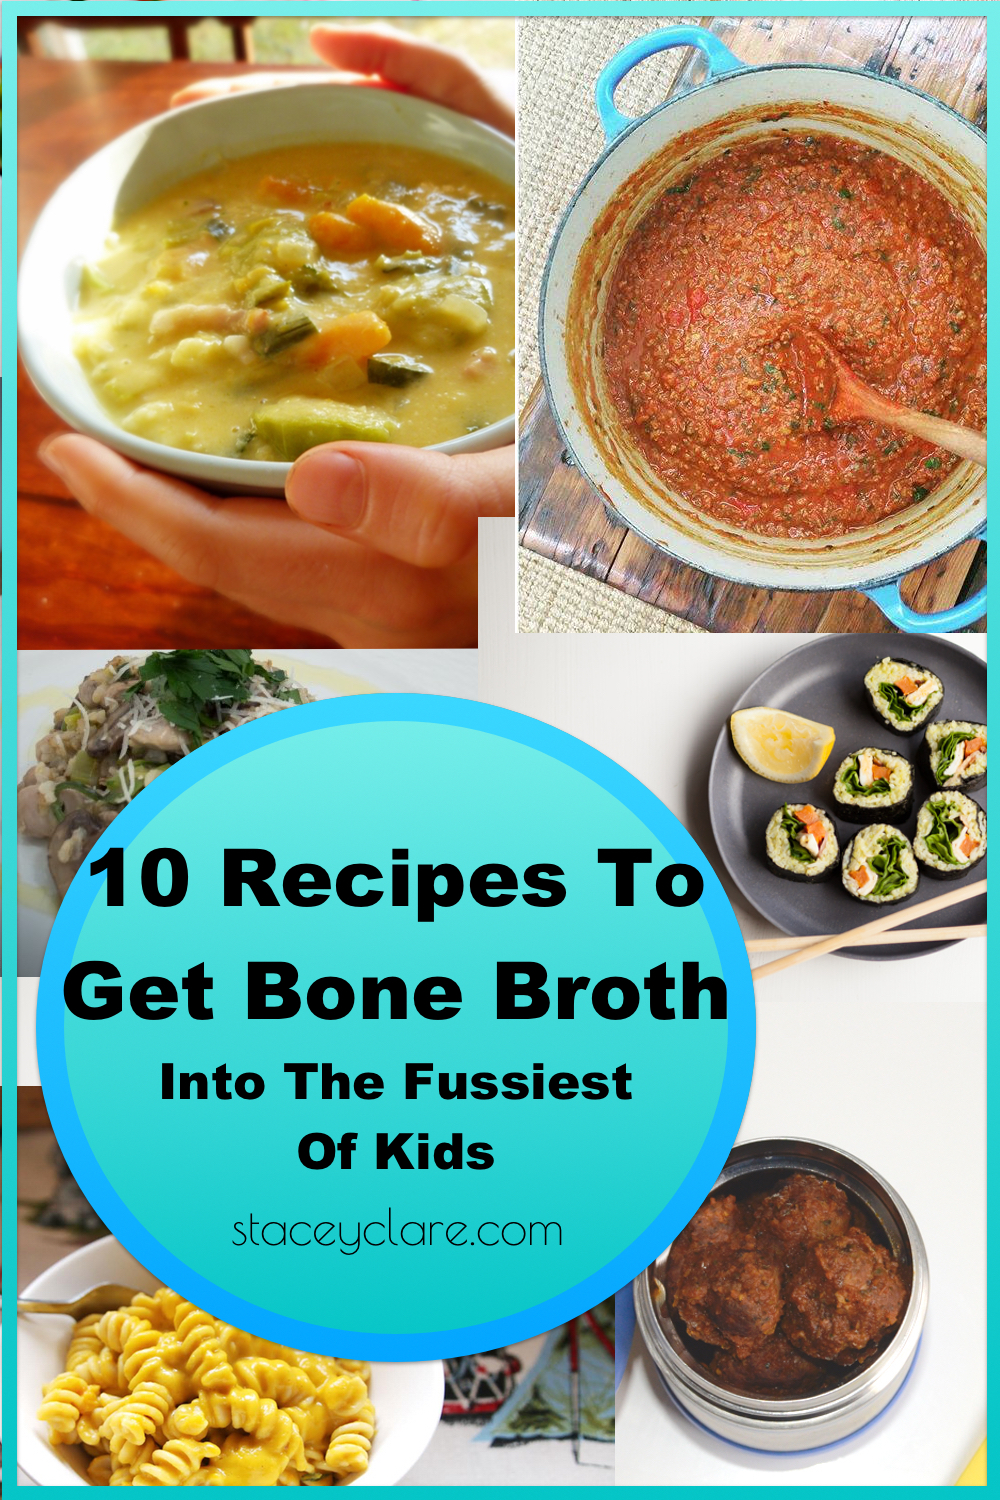 tips for how to get kids to eat bone broth